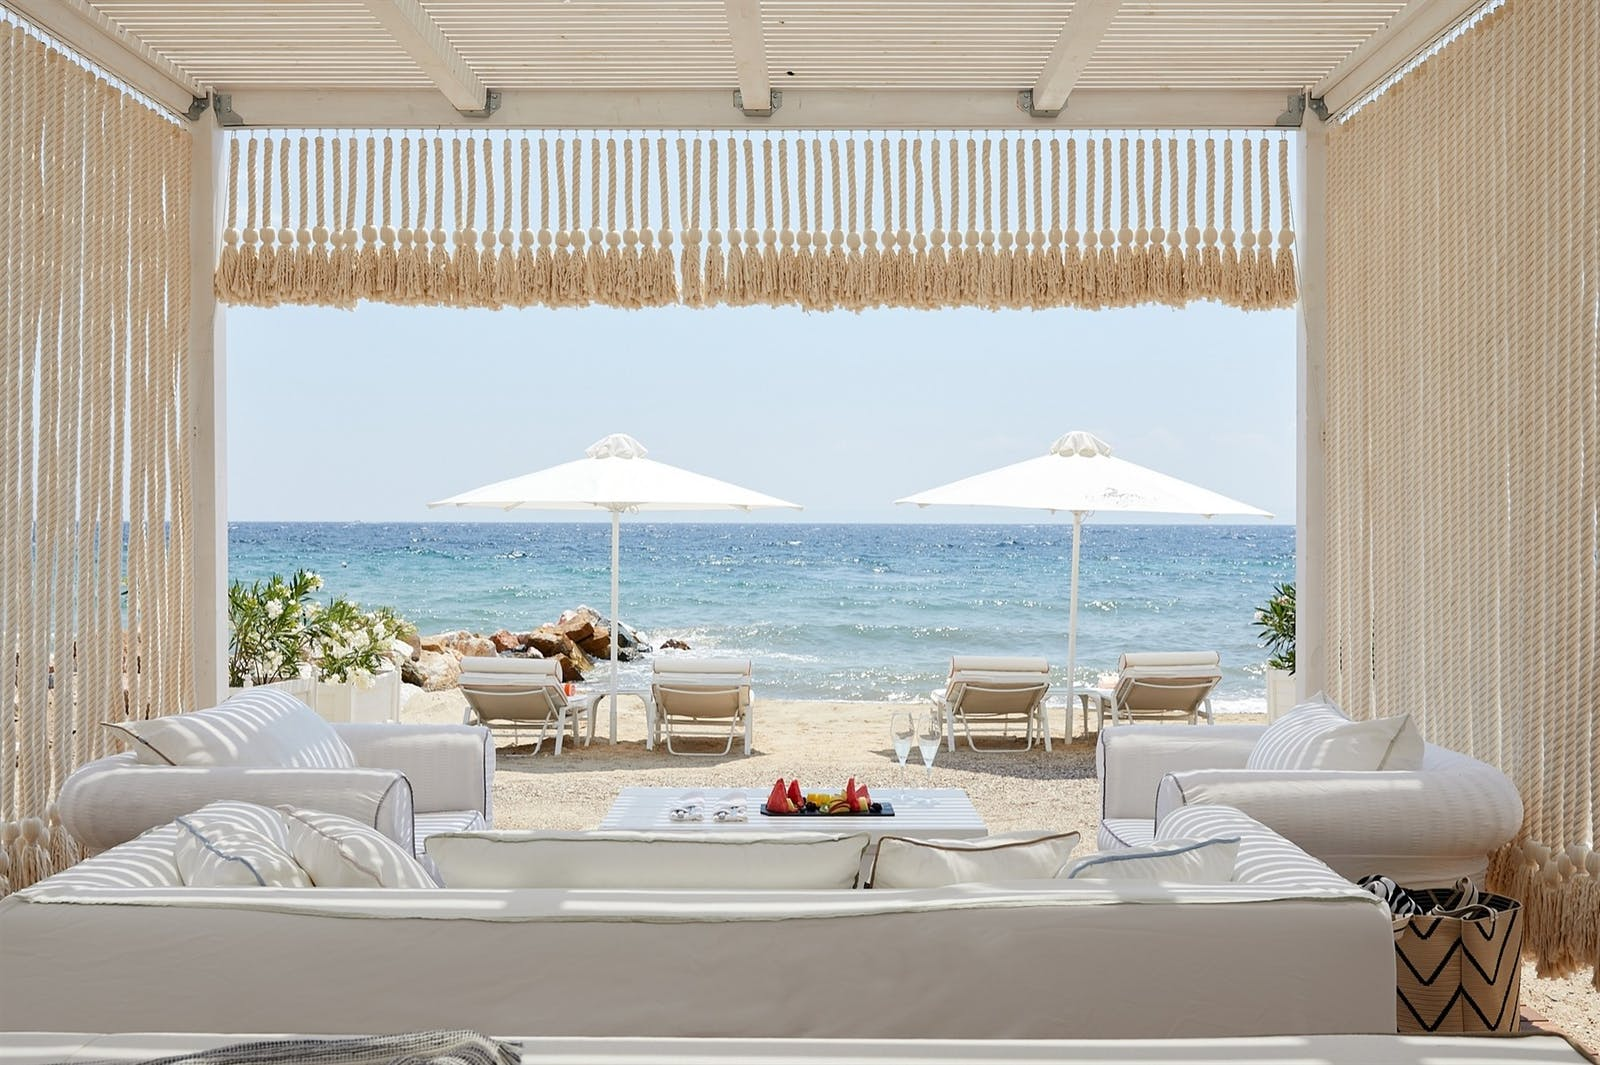 Beach cabanas, Danai Beach Resort & Villas, Halkidiki, Greece